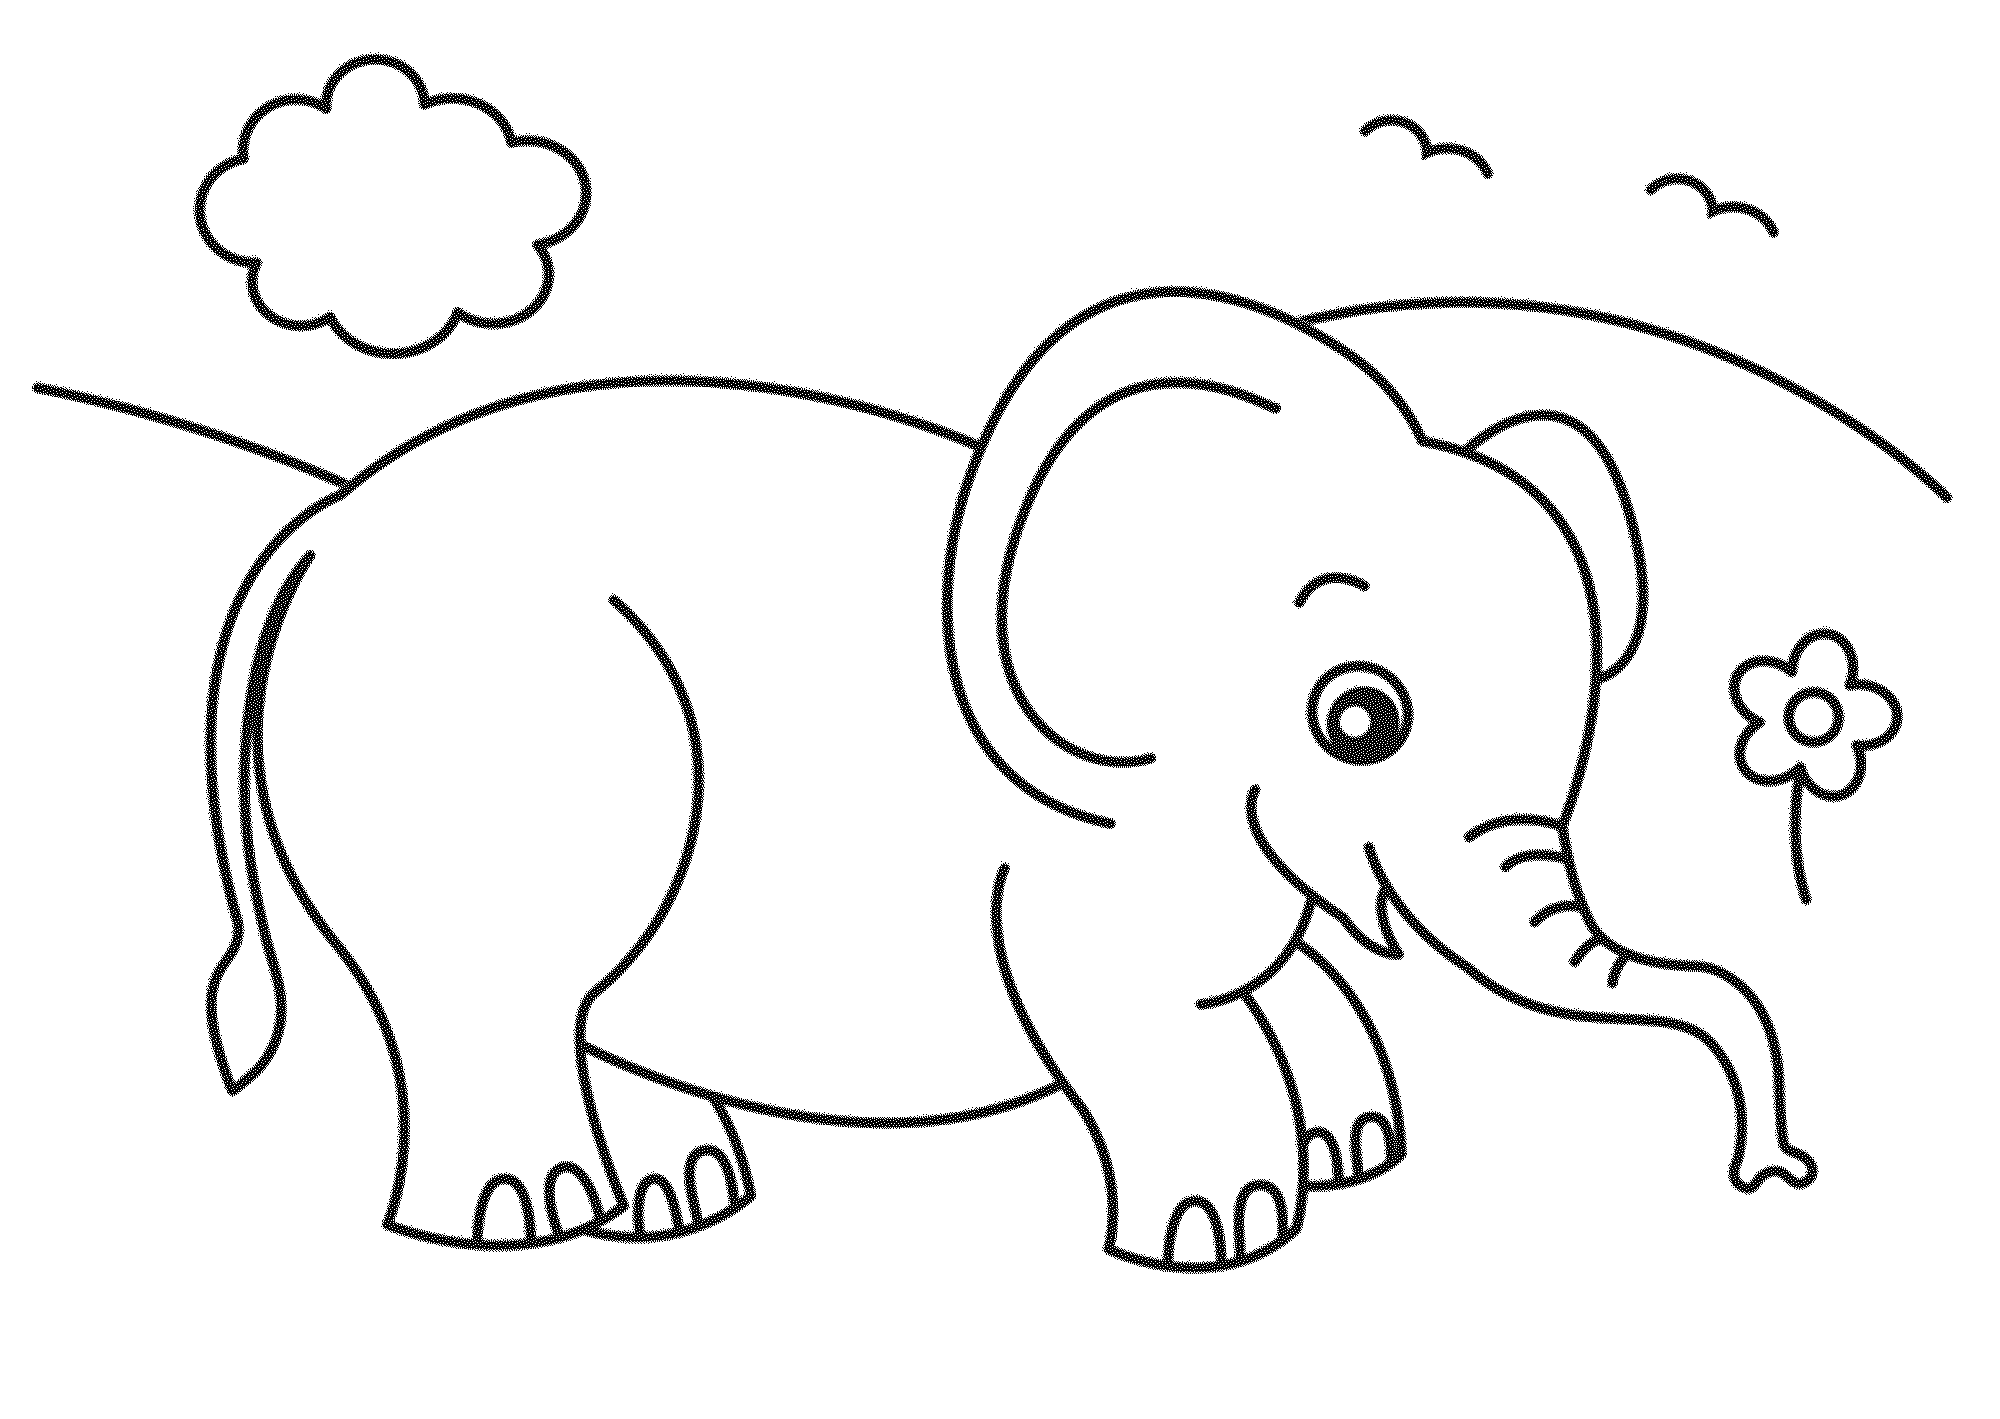 coloring pages elephants print download teaching kids through elephant coloring elephants pages coloring